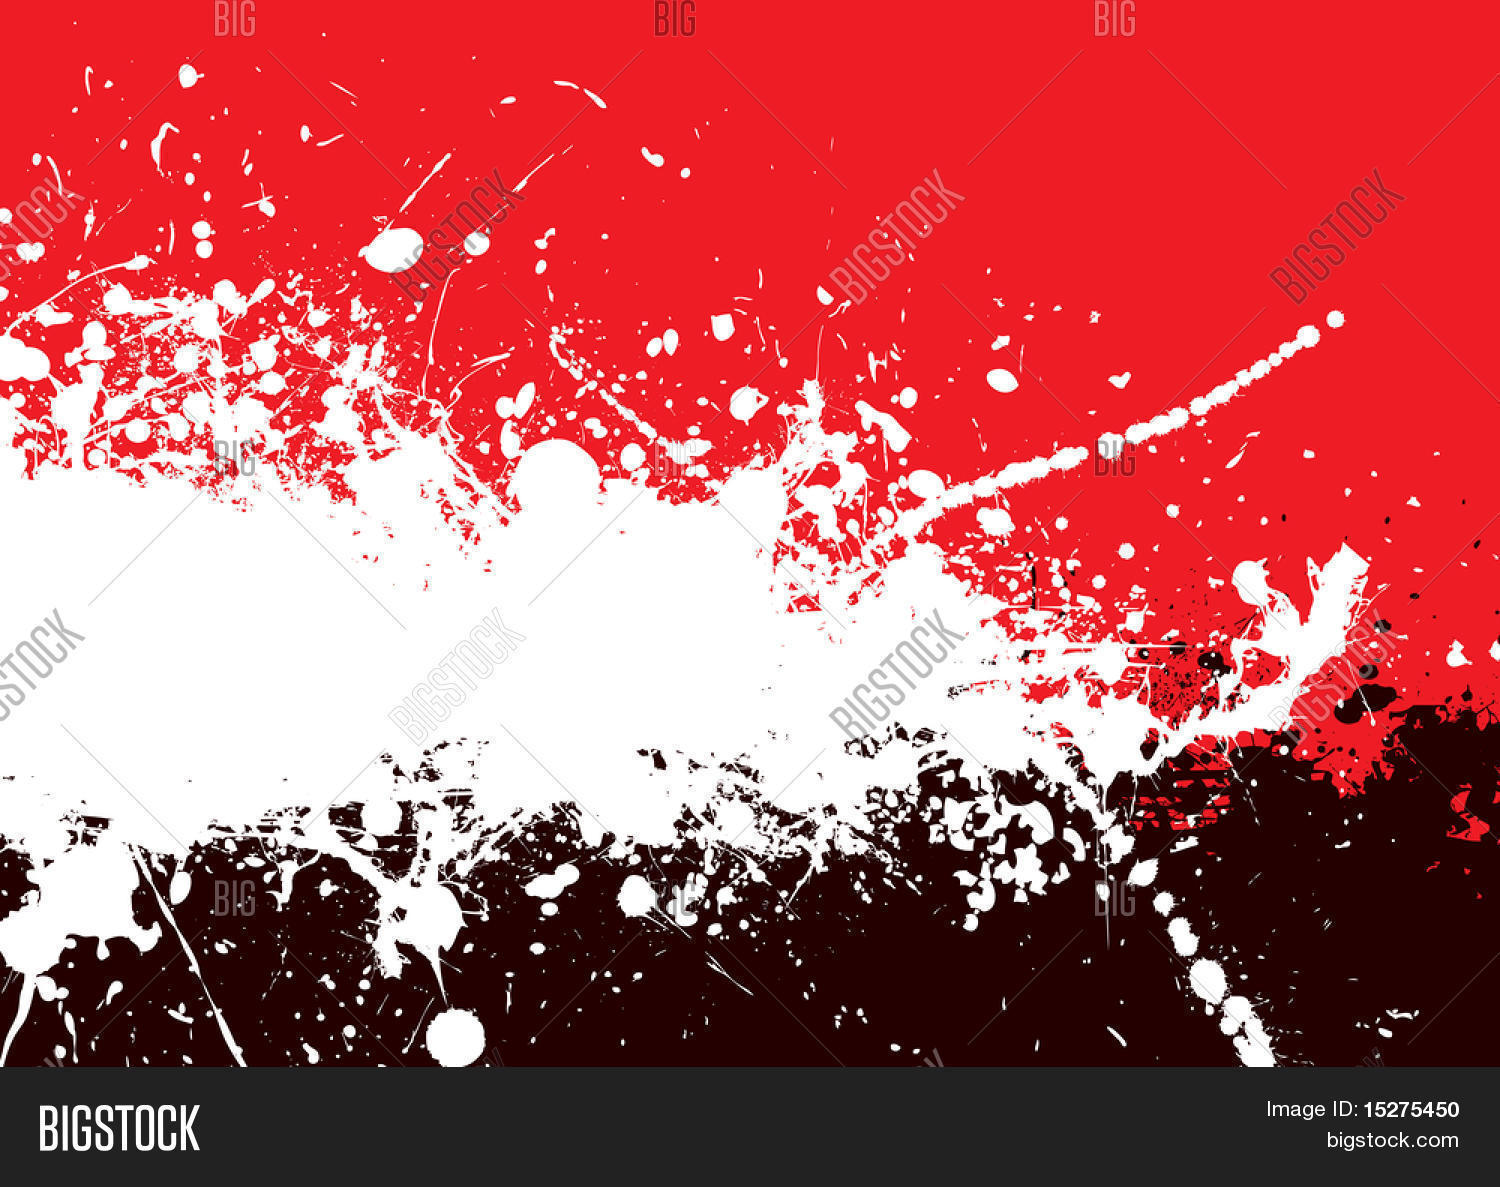 Red Black Abstract Vector Photo Free Trial Bigstock